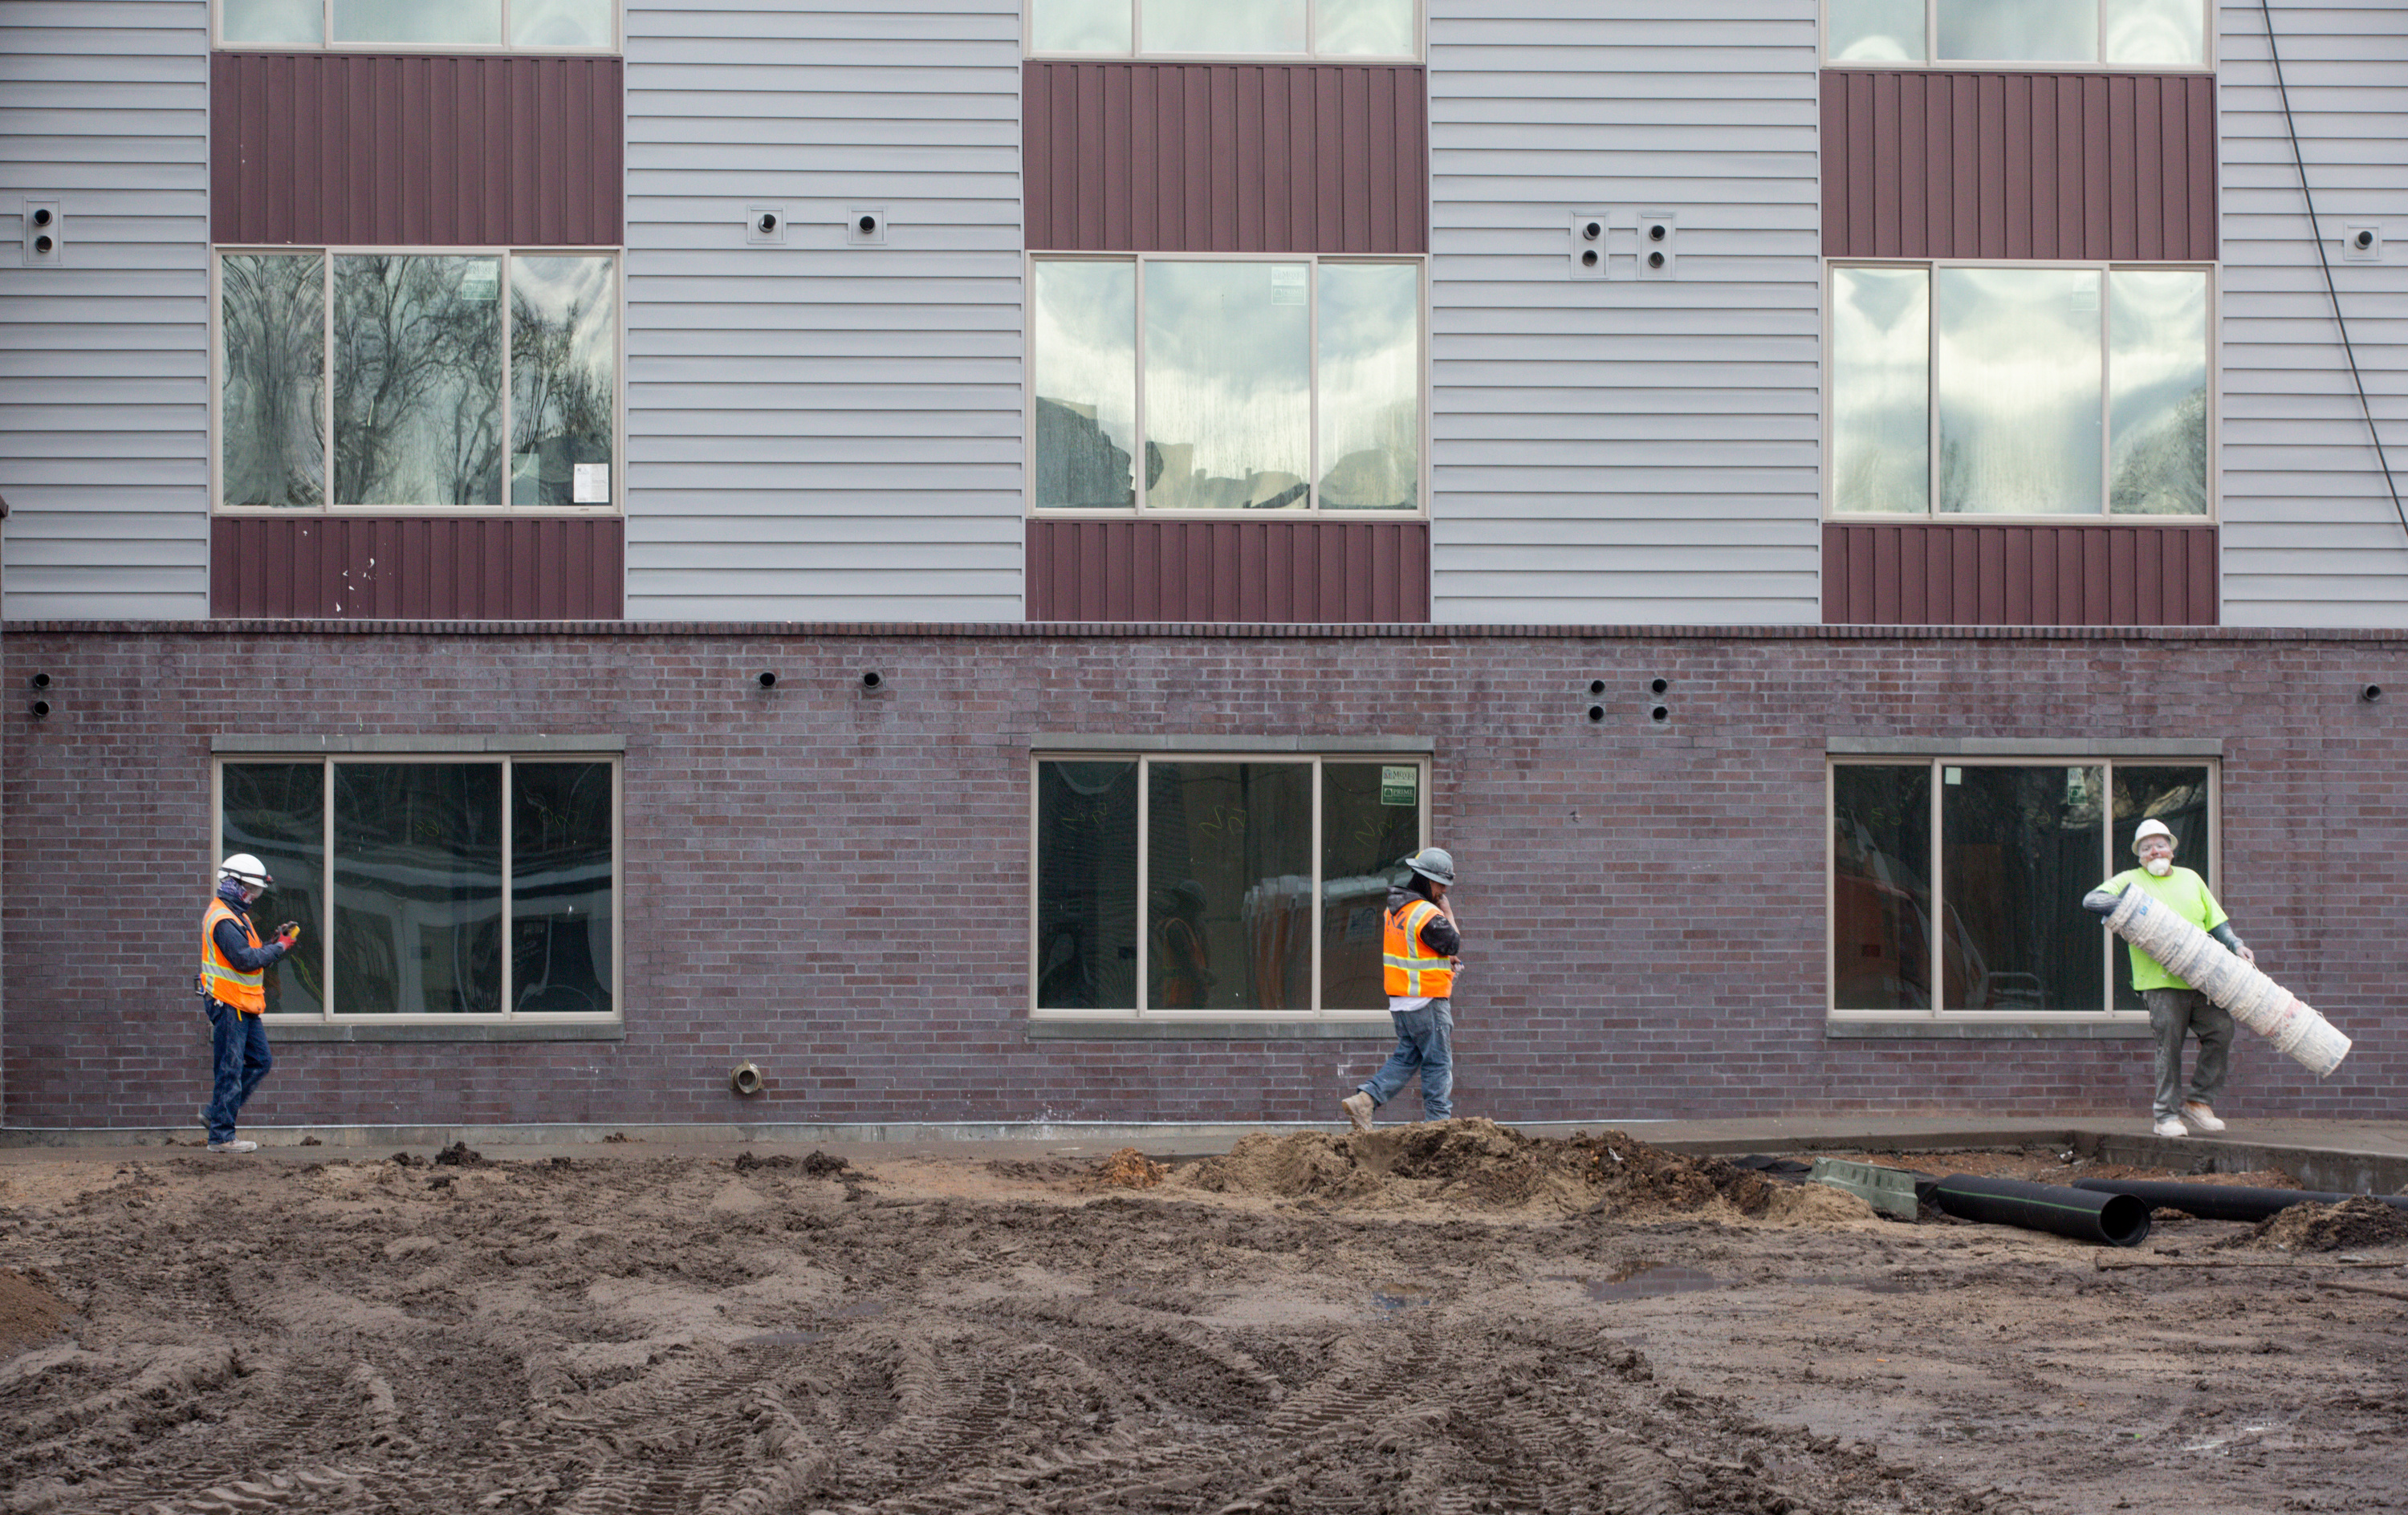 Construction crews work on an affordable housing building at 500 West and 400 North in Salt Lake City on Friday, Jan. 24, 2020. The five-story building will have a total of 74 units including eight live/work spaces. The rest will be one-bedroom studios.